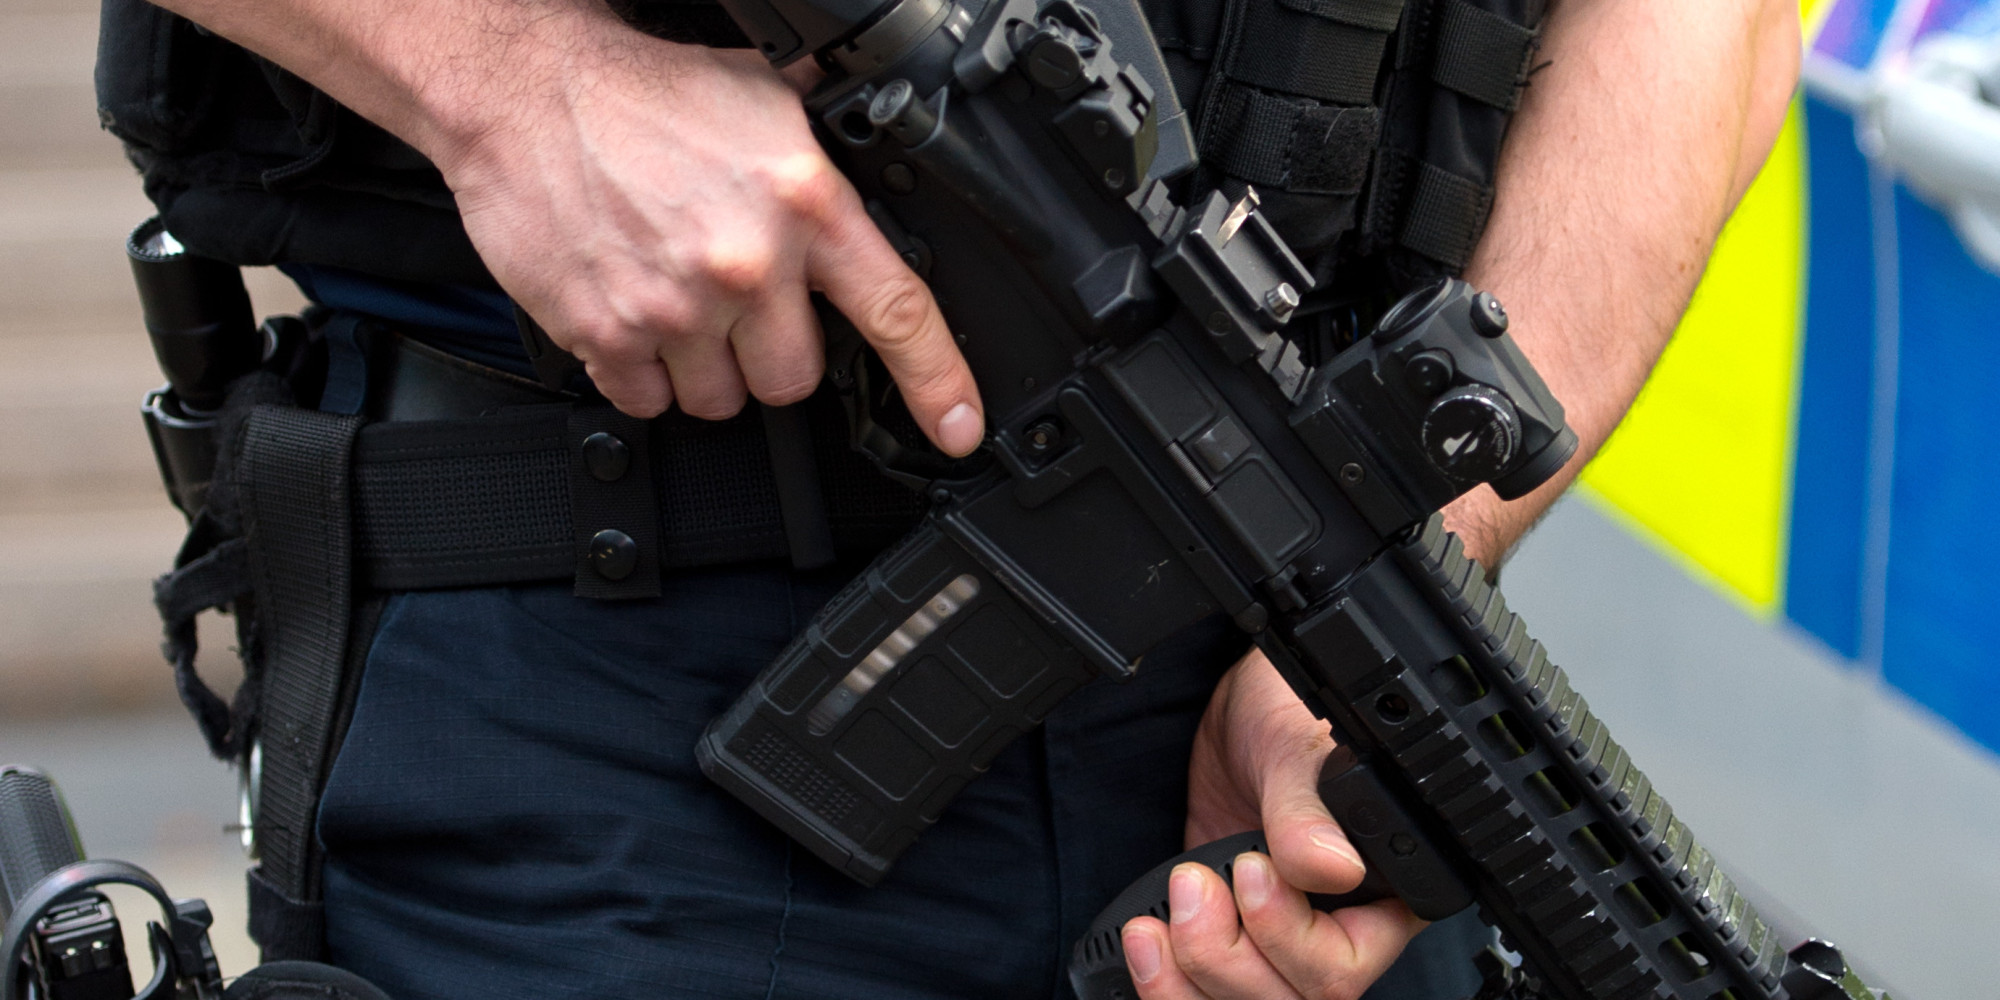 Firearms used on only 7 occasions by British police over 12 month period